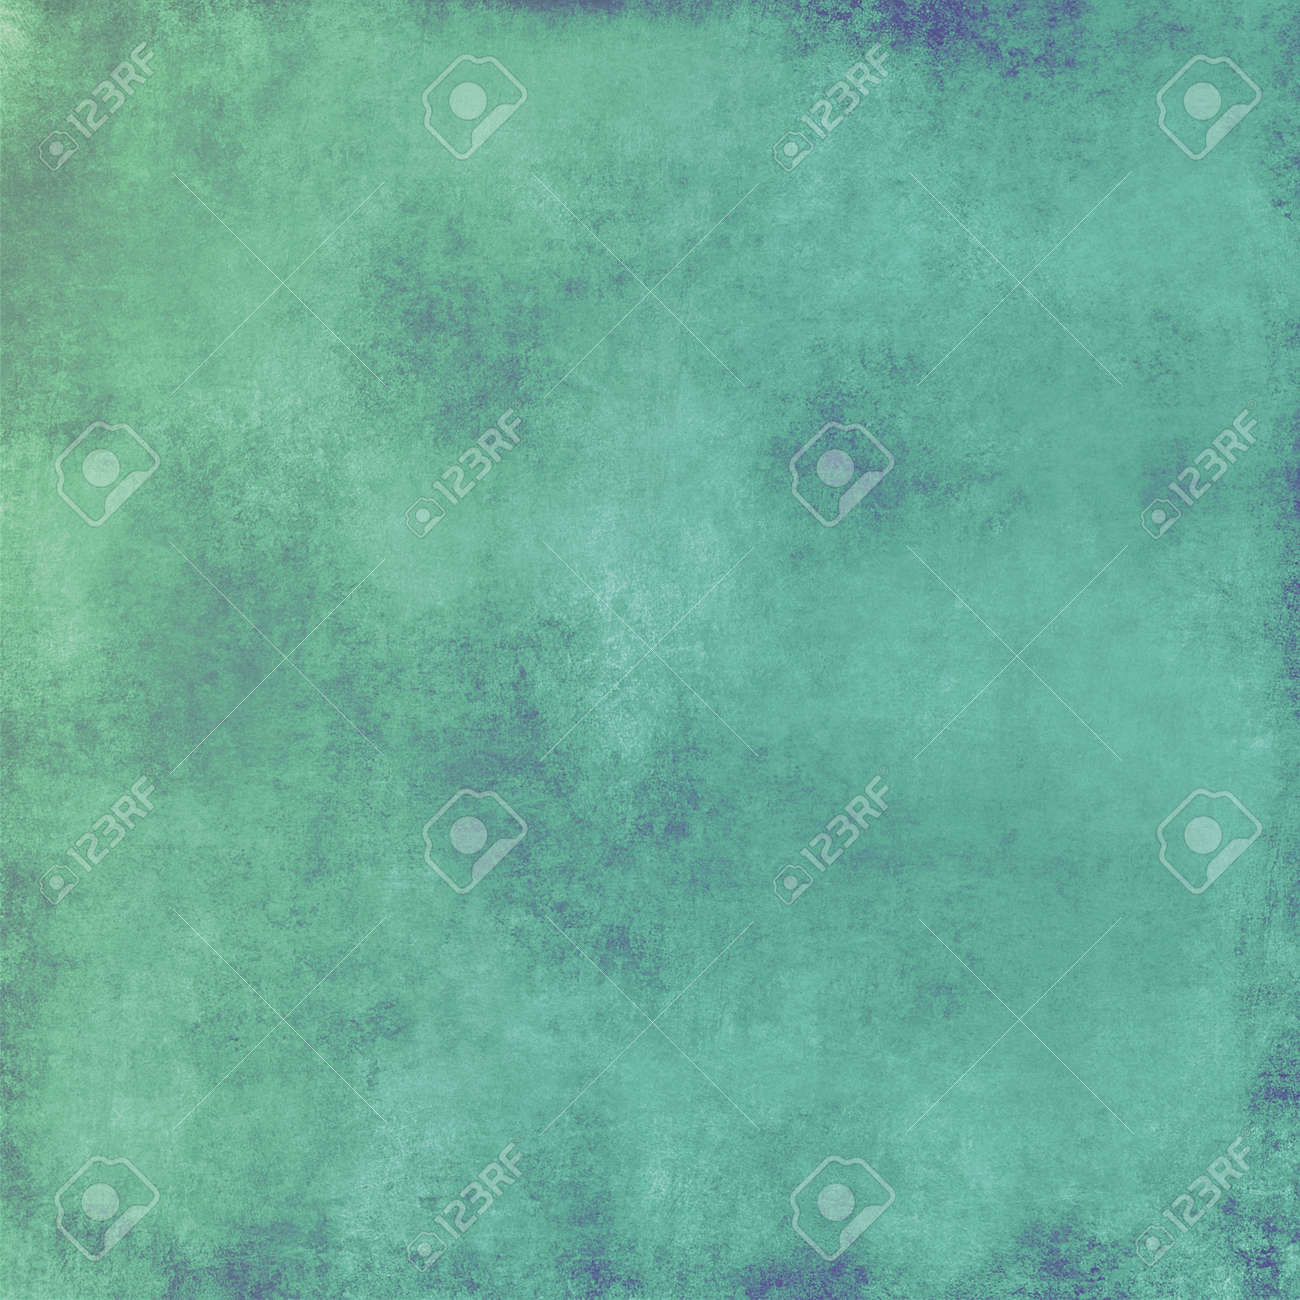 grunge abstract background - 140316260